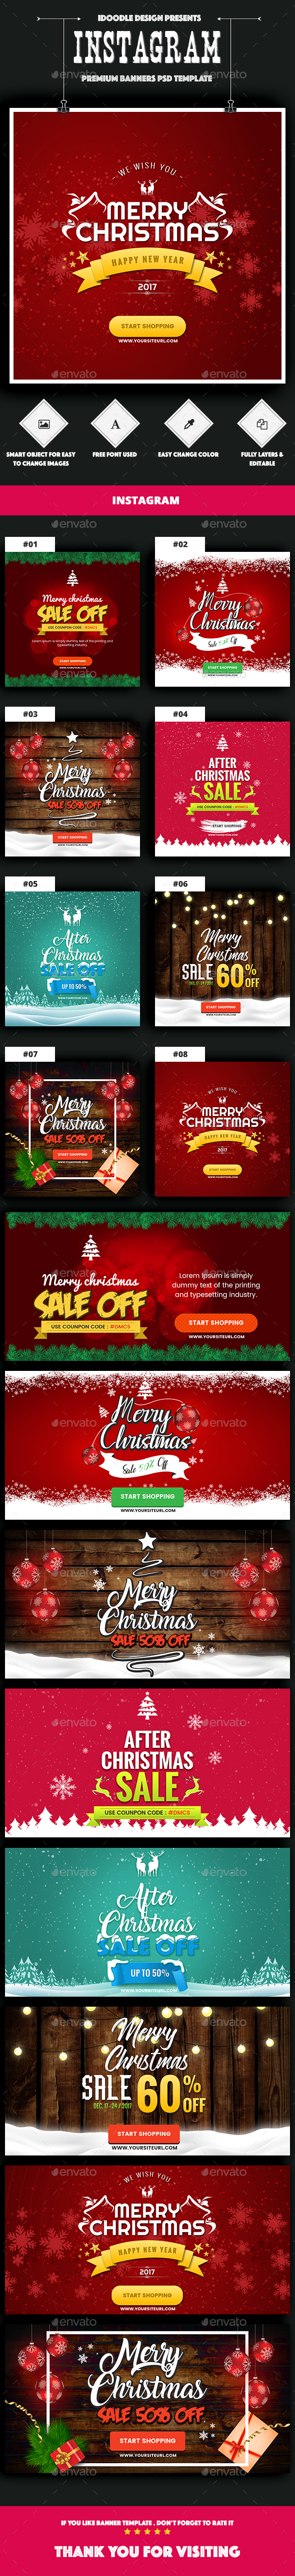 NewsFeed Merry Christmas Banners Ad - 16 PSD [02 Size Each] - Banners & Ads Web Elements